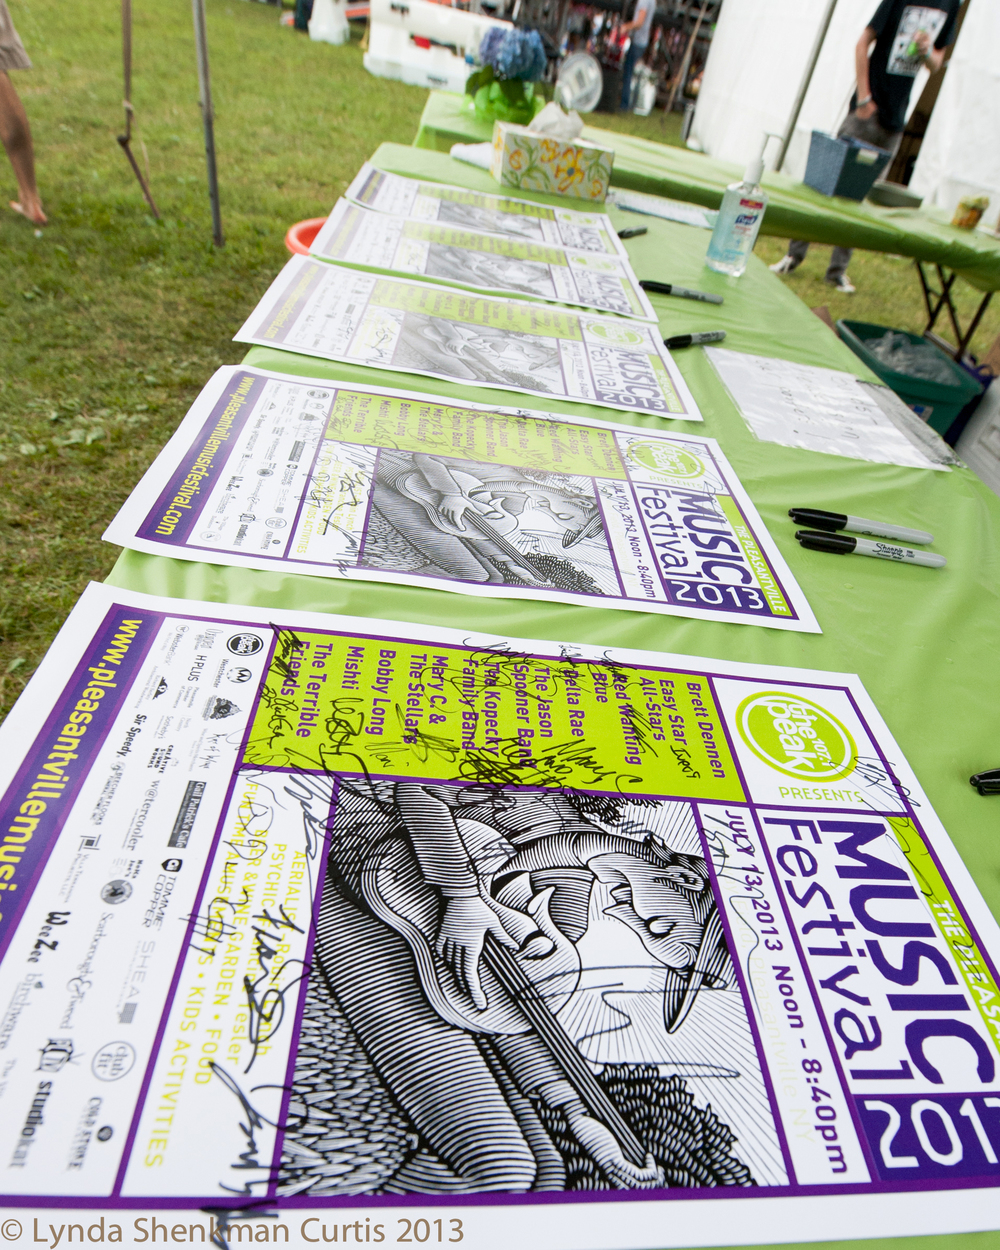 Signed posters © 2013 Lynda Shenkman Curtis